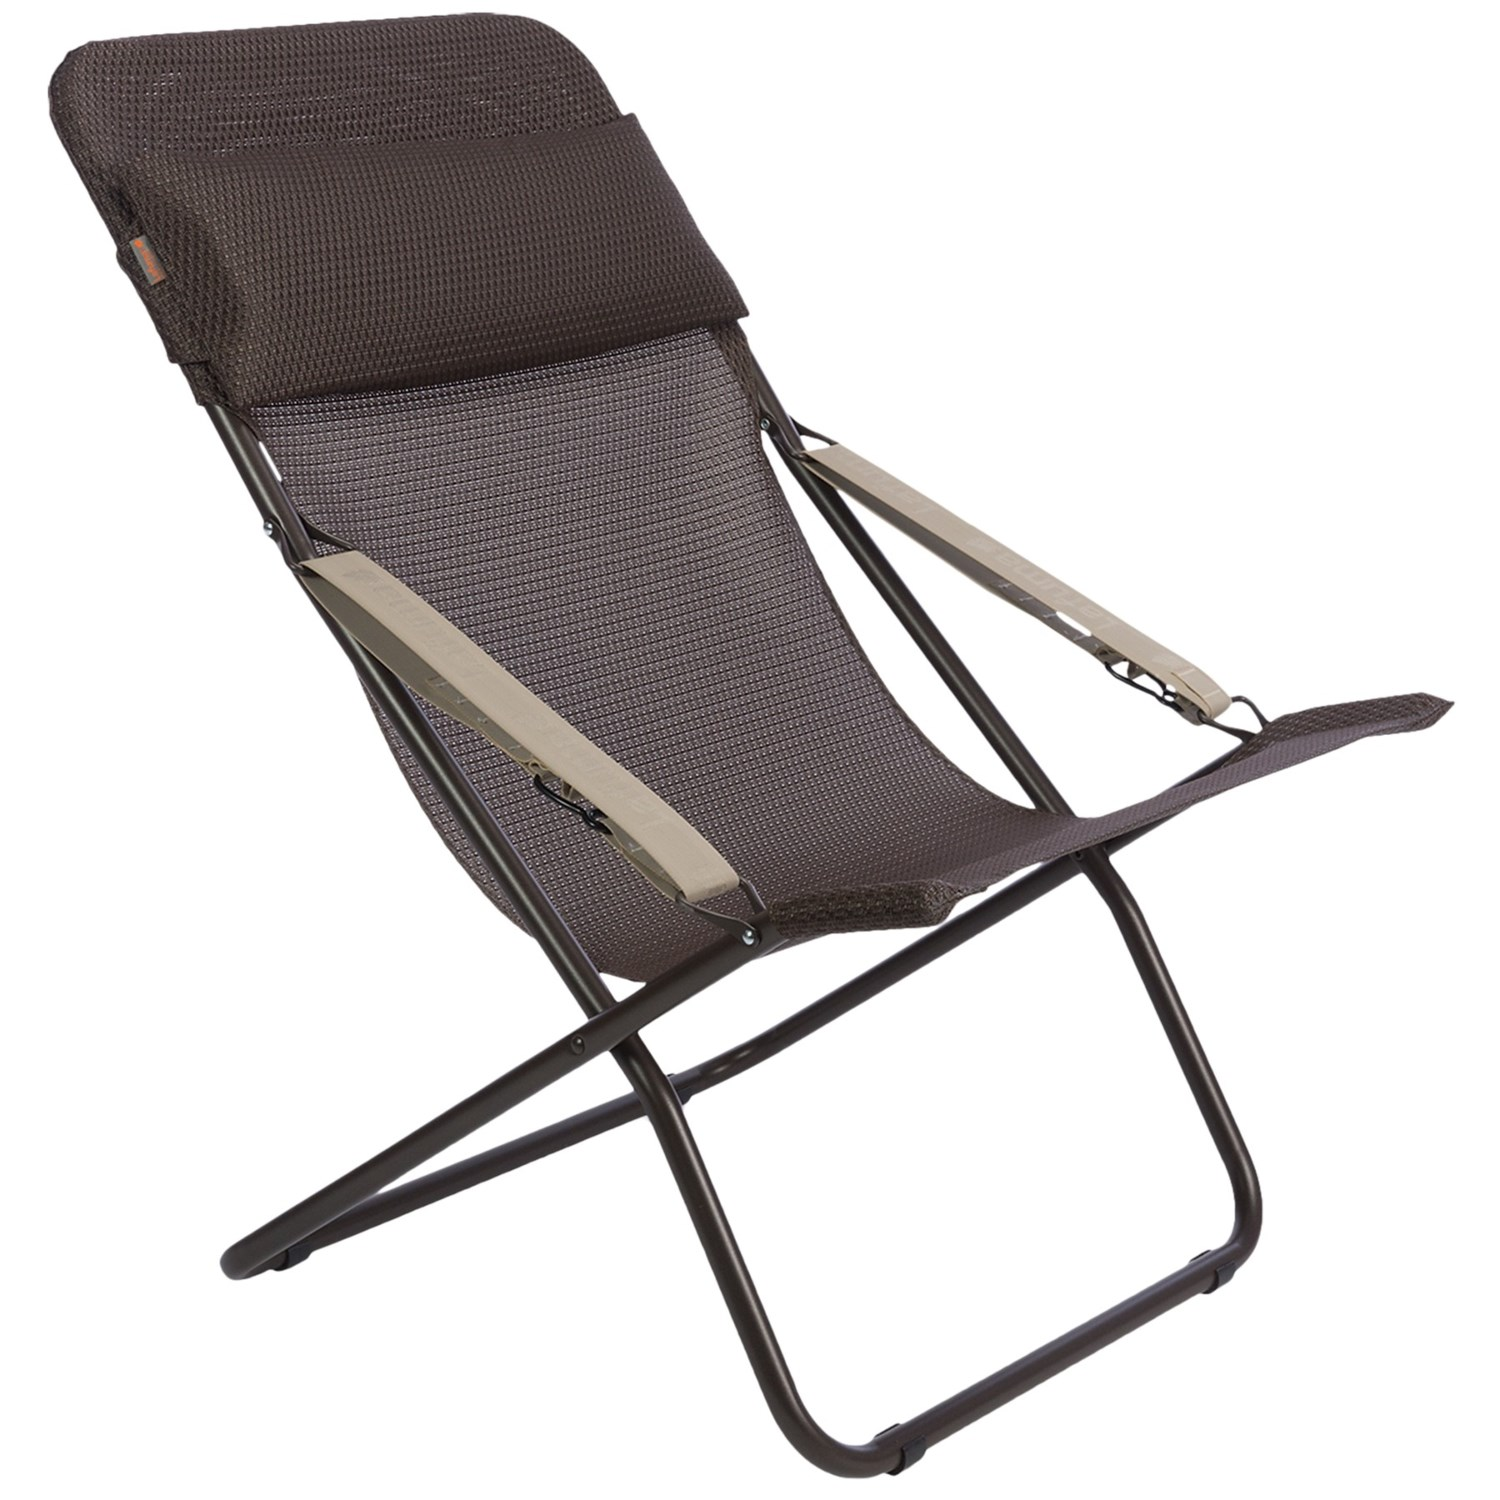 Lafuma Transabed XL Folding Lounge Chair Batyline Save 29%